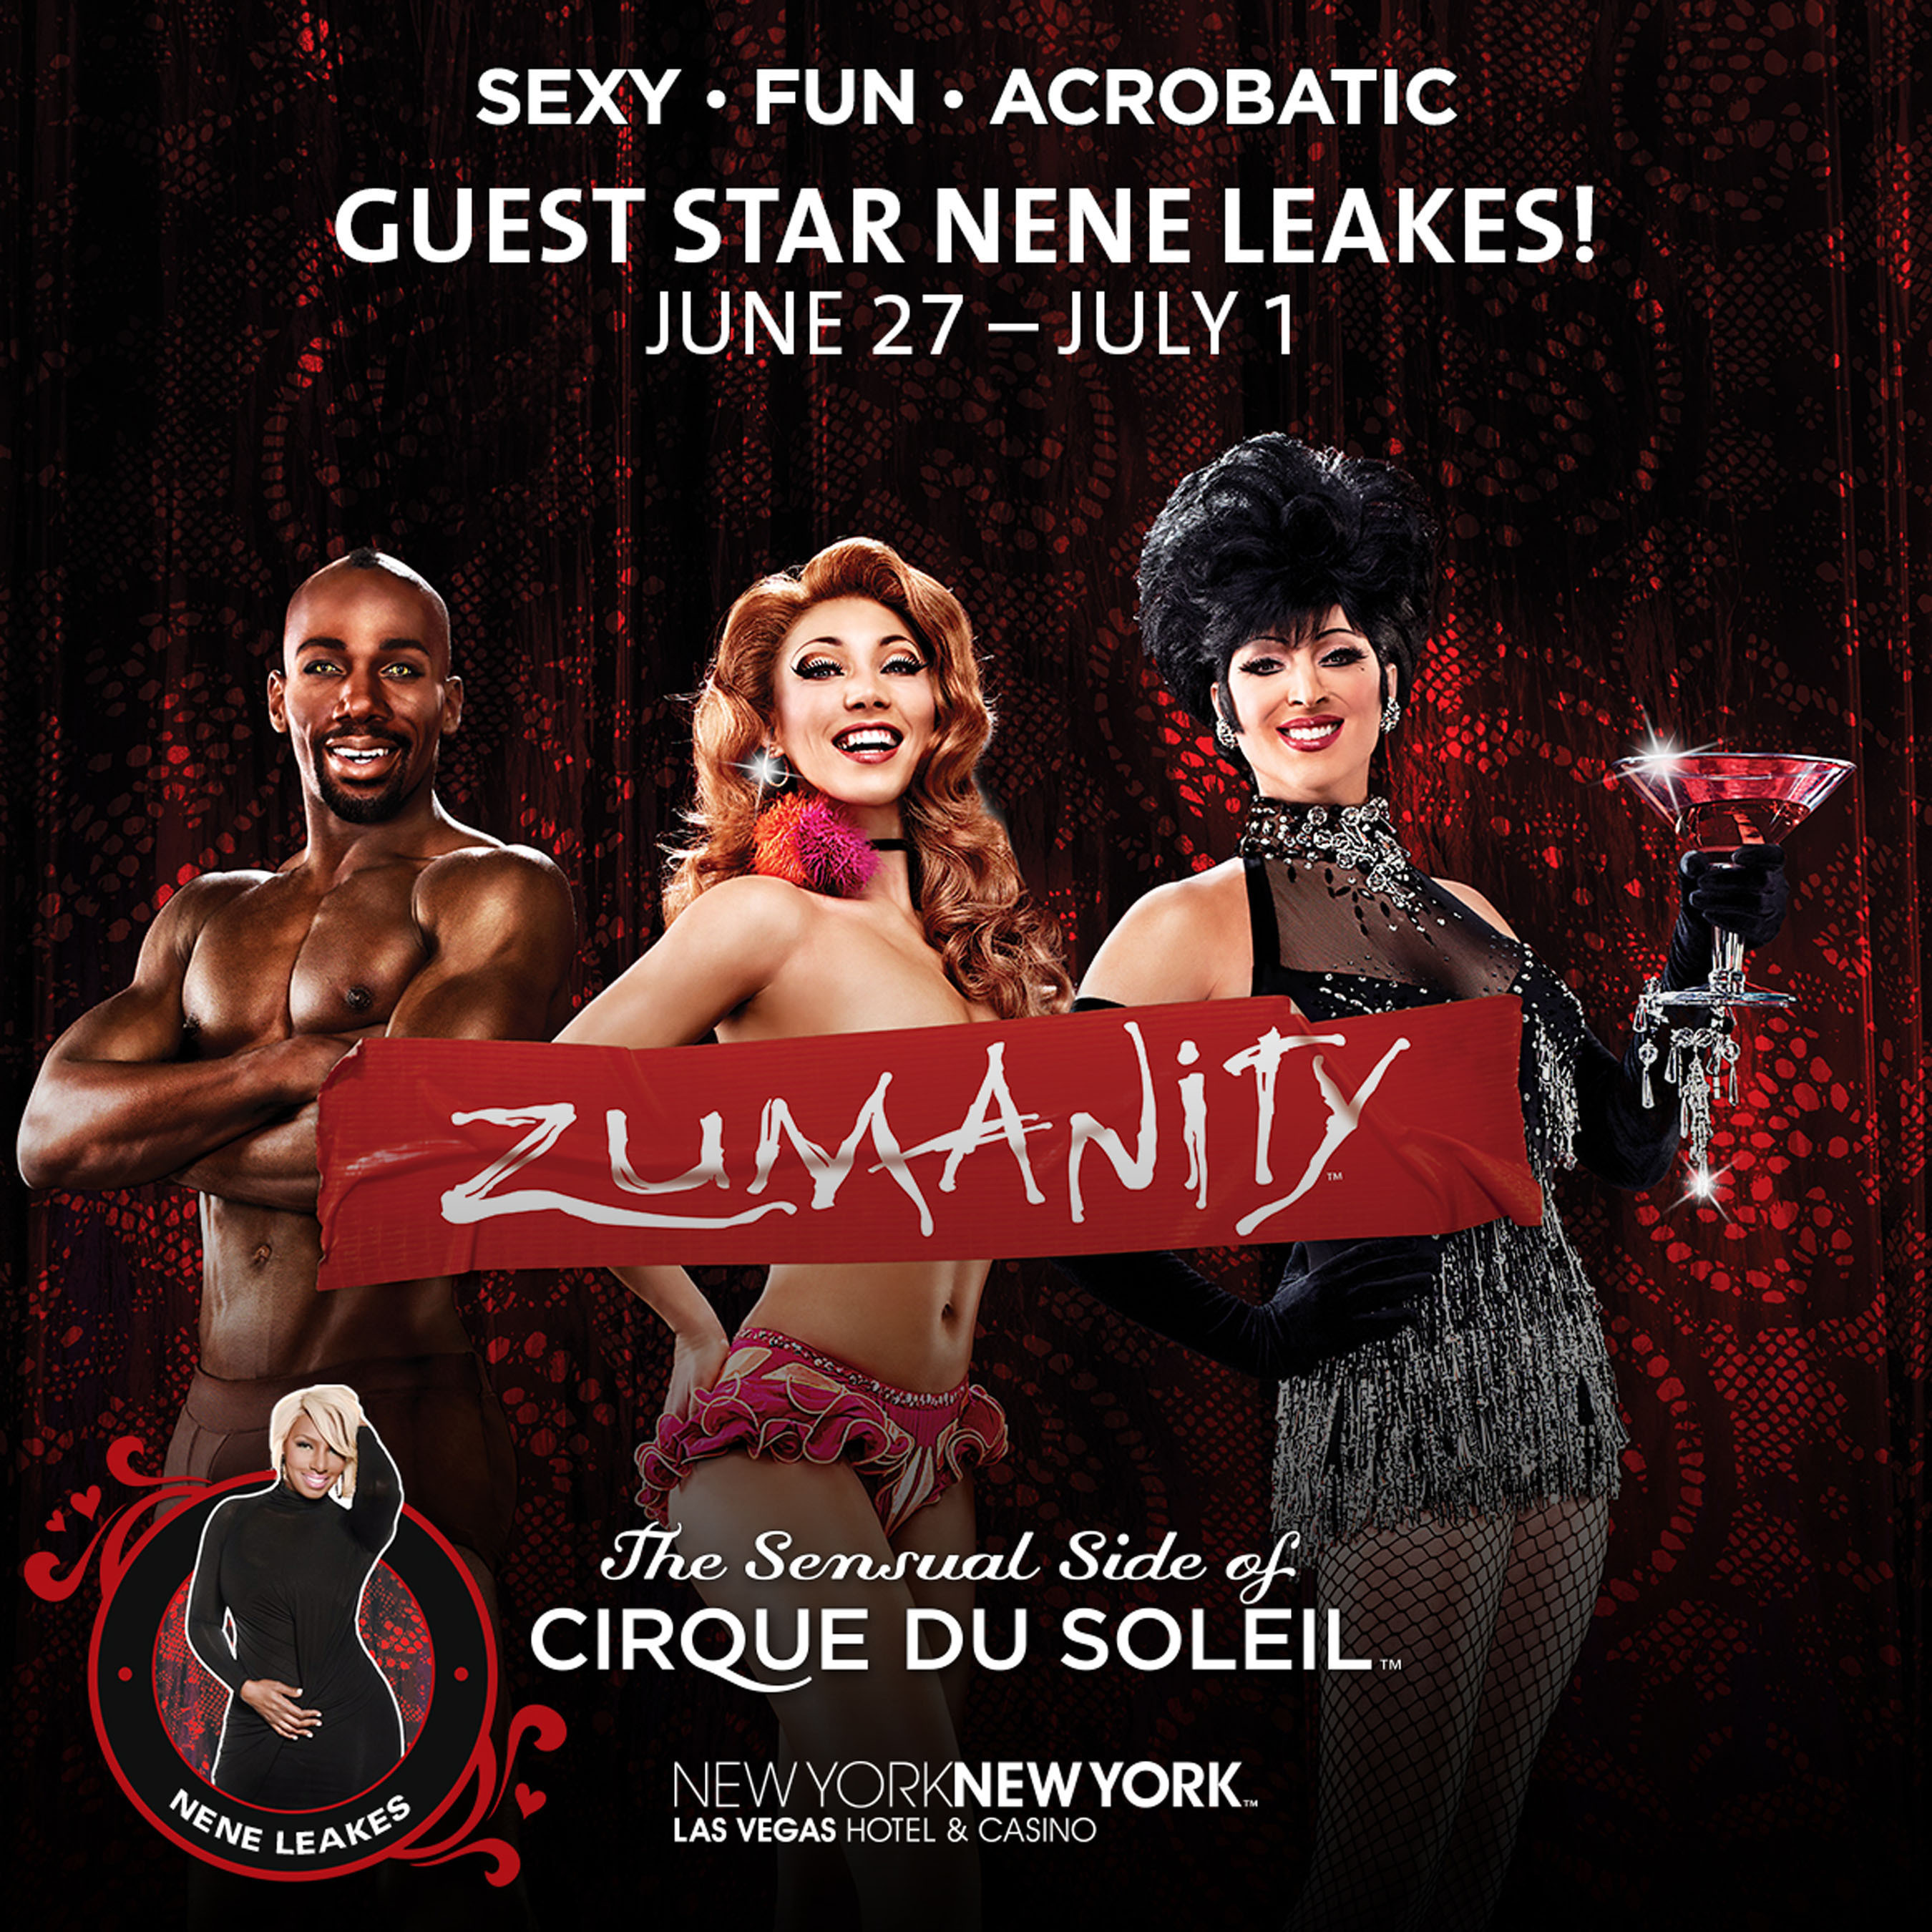 """ZUMANITY, The Sensual Side of Cirque du Soleil at New York-New York Hotel & Casino welcomes television personality and actress NeNe Leakes for an exclusive 10-show engagement in celebration of the show's 10th anniversary year, June 27 through July 1."""". (PRNewsFoto/Cirque du Soleil) (PRNewsFoto/CIRQUE DU SOLEIL)"""